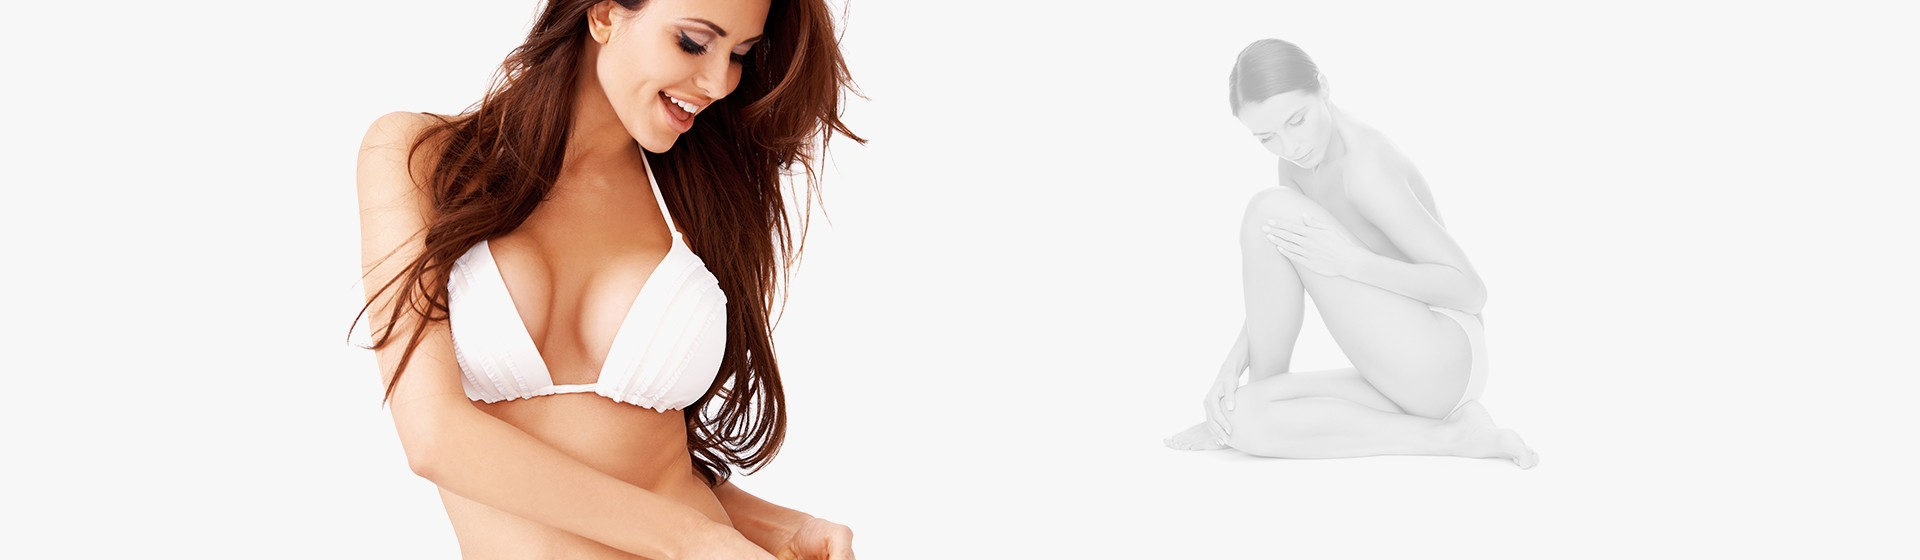 Slide Background Cosmetic Surgery Body